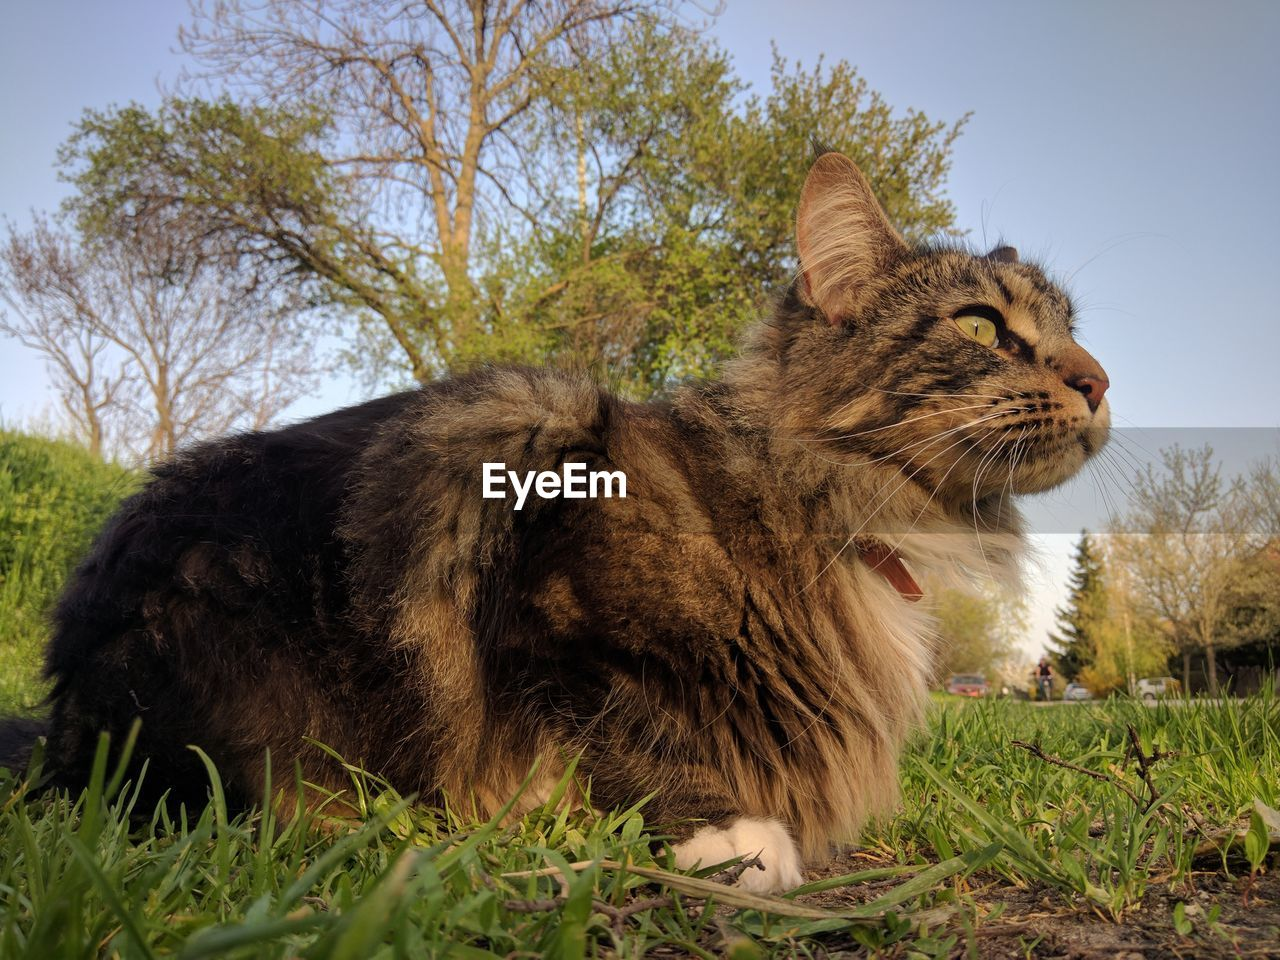 plant, mammal, animal themes, animal, one animal, grass, pets, domestic, sky, domestic animals, feline, cat, tree, land, nature, field, day, no people, vertebrate, domestic cat, outdoors, whisker, profile view